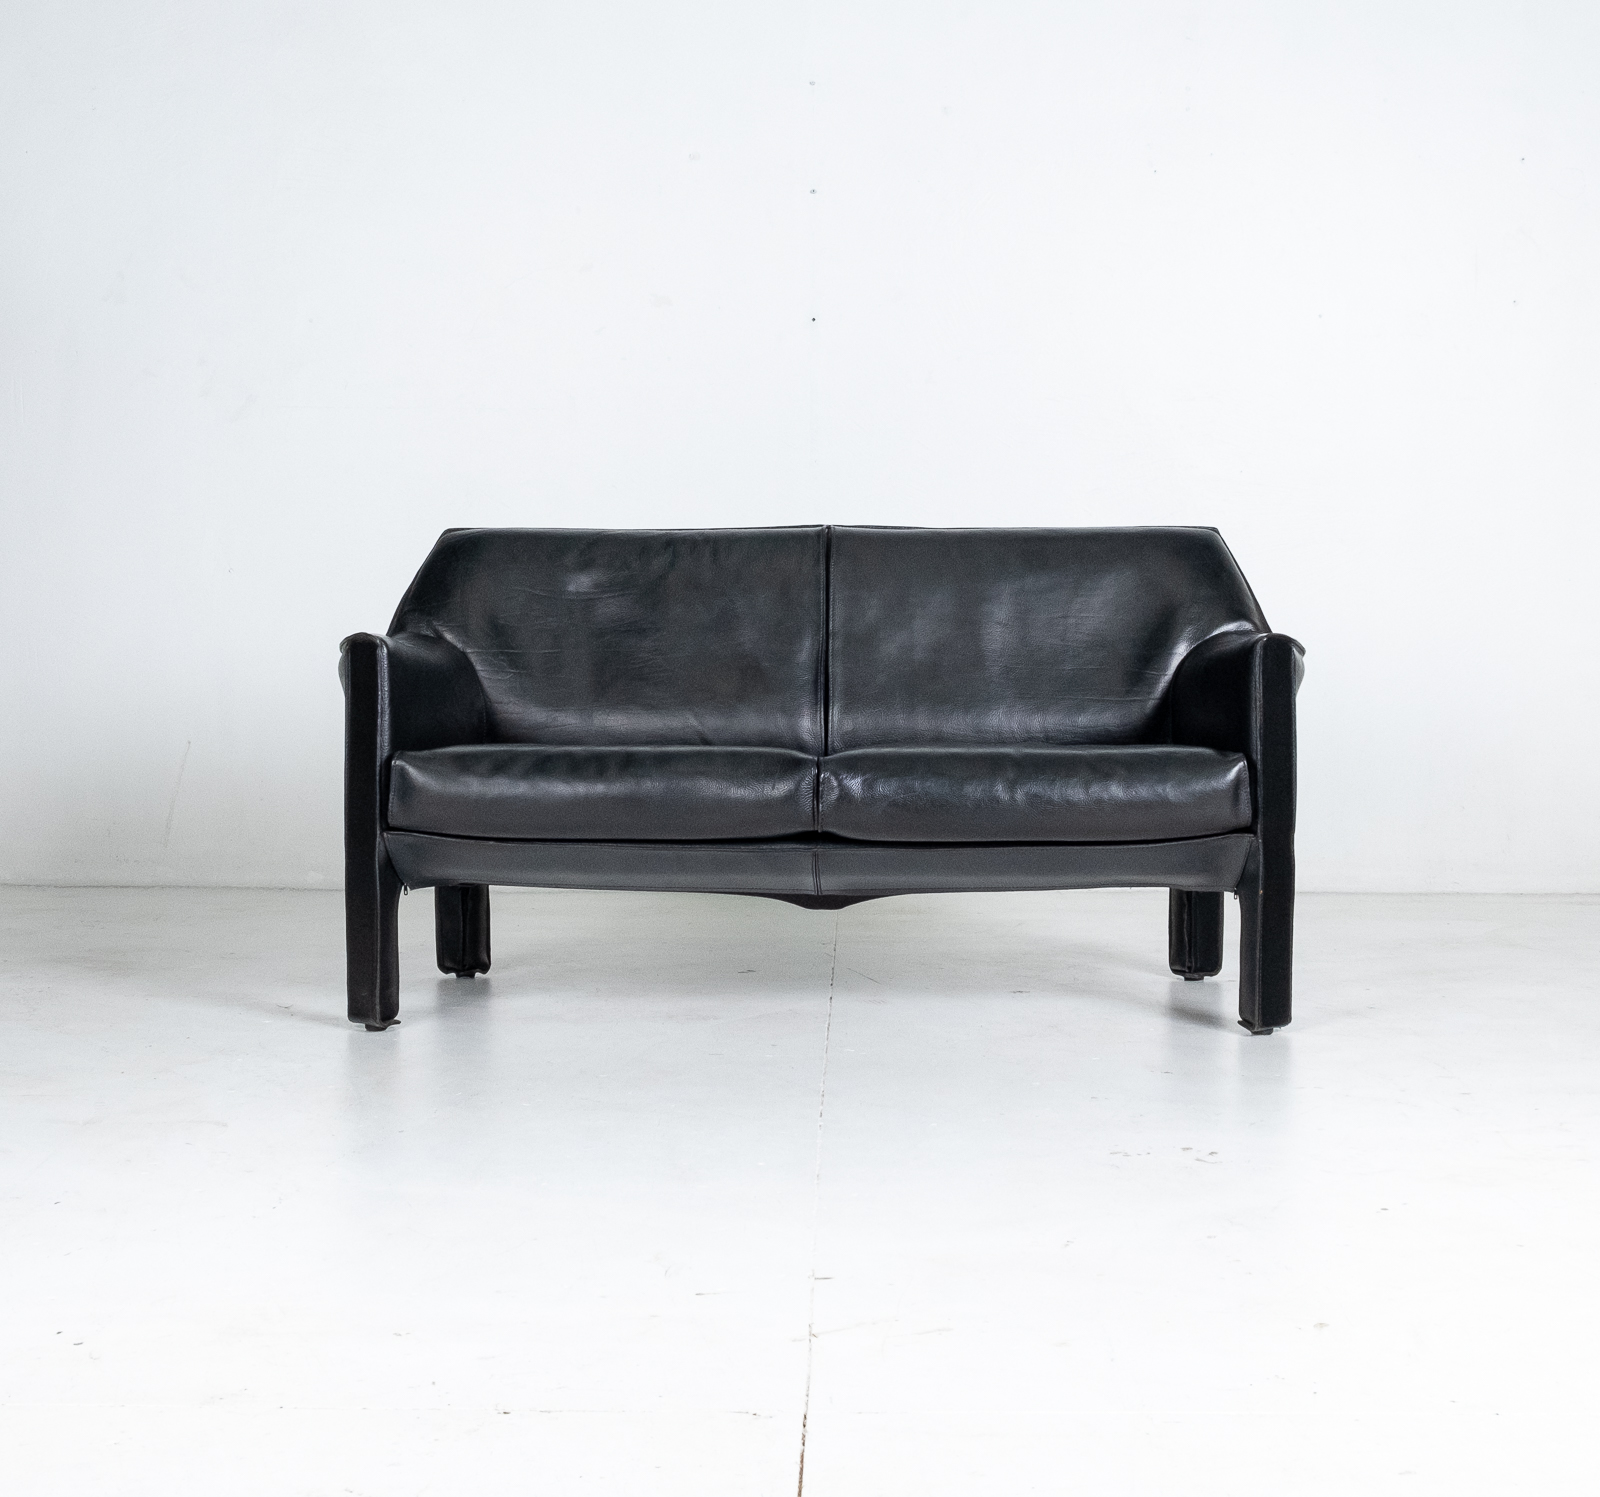 Model 415 Cab 2 Seat Sofa By Mario Bellini For Cassina In Black Leather, 1987, Italy 00001